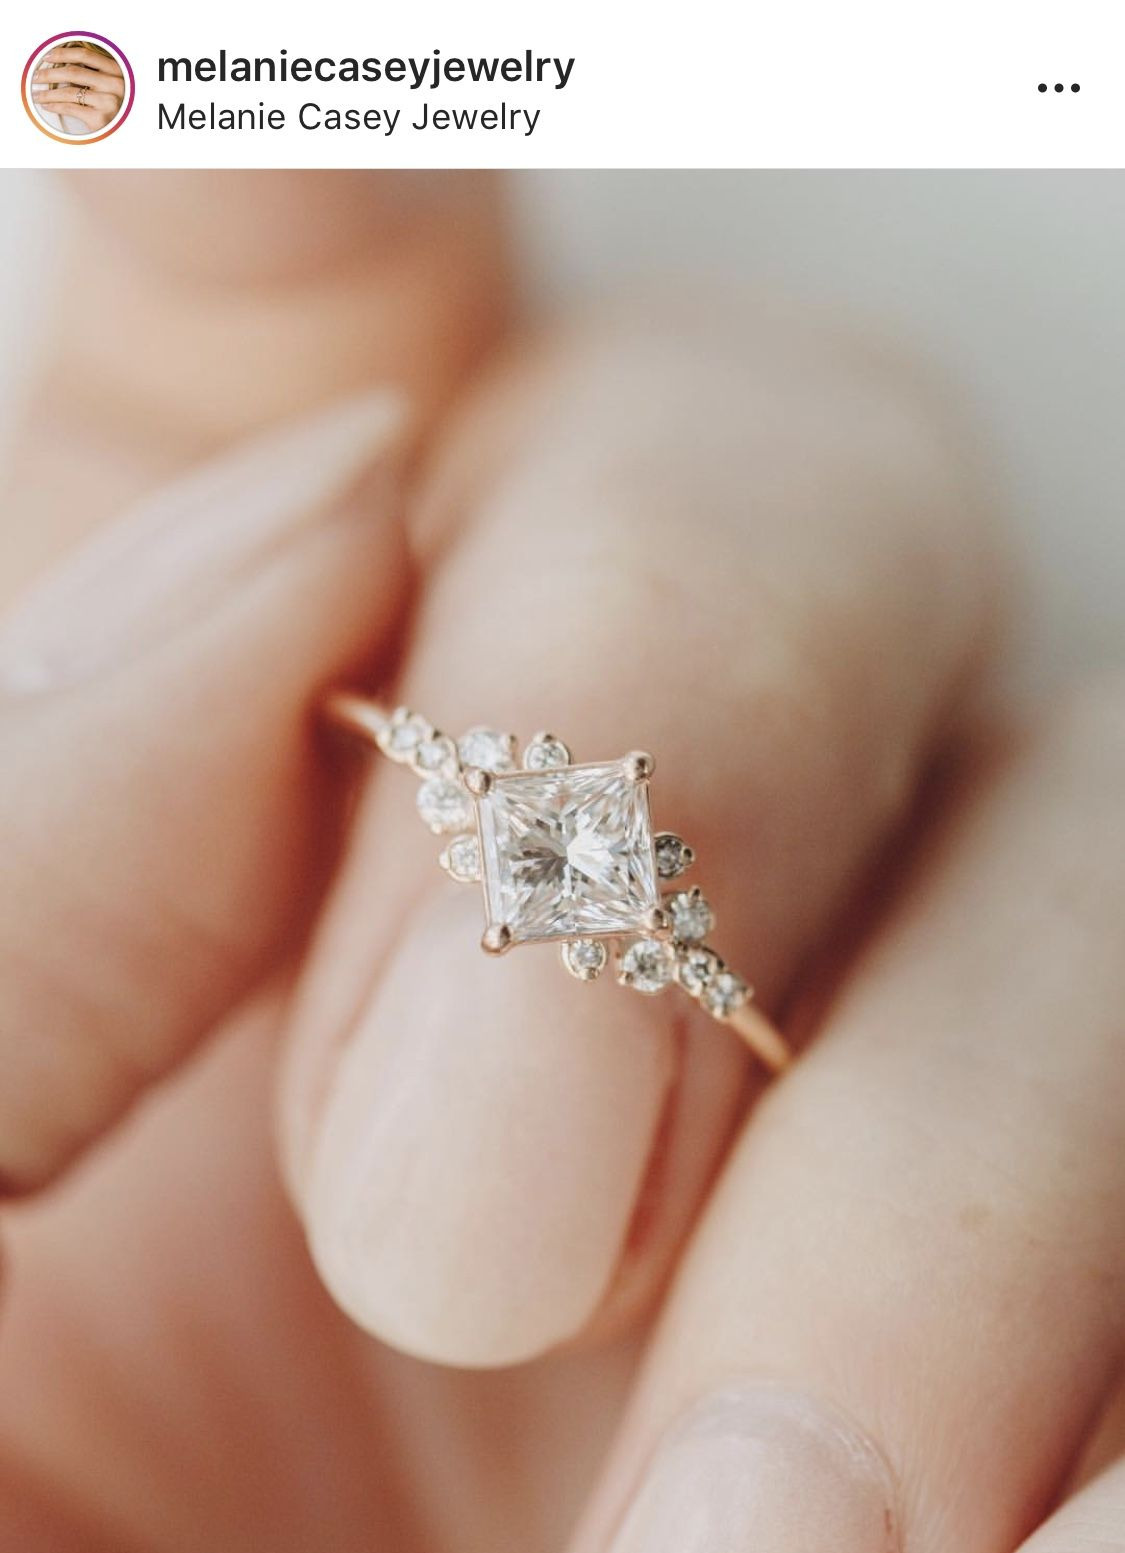 Pin By Julia Potter On Secret Love Vintage Engagement Rings Diamond Wedding Bands Unique Engagement Rings